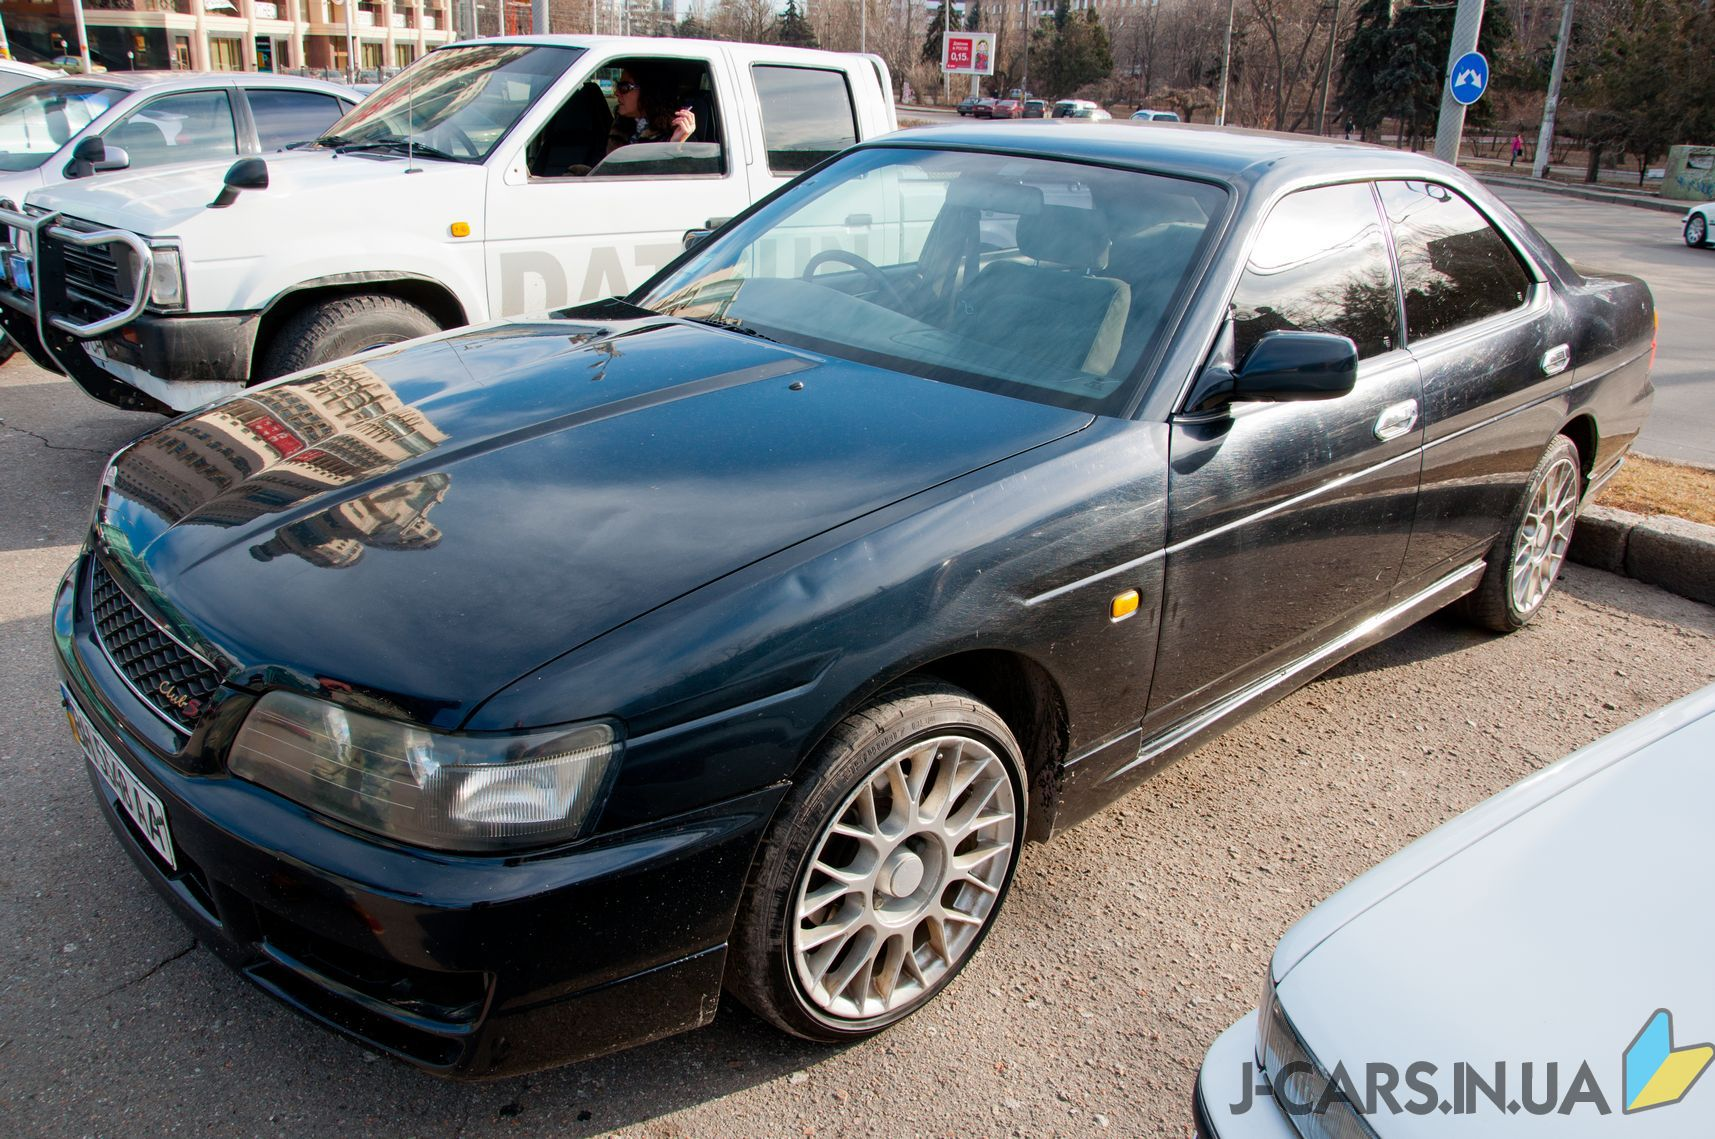 j-cars.in.ua nissan laurel